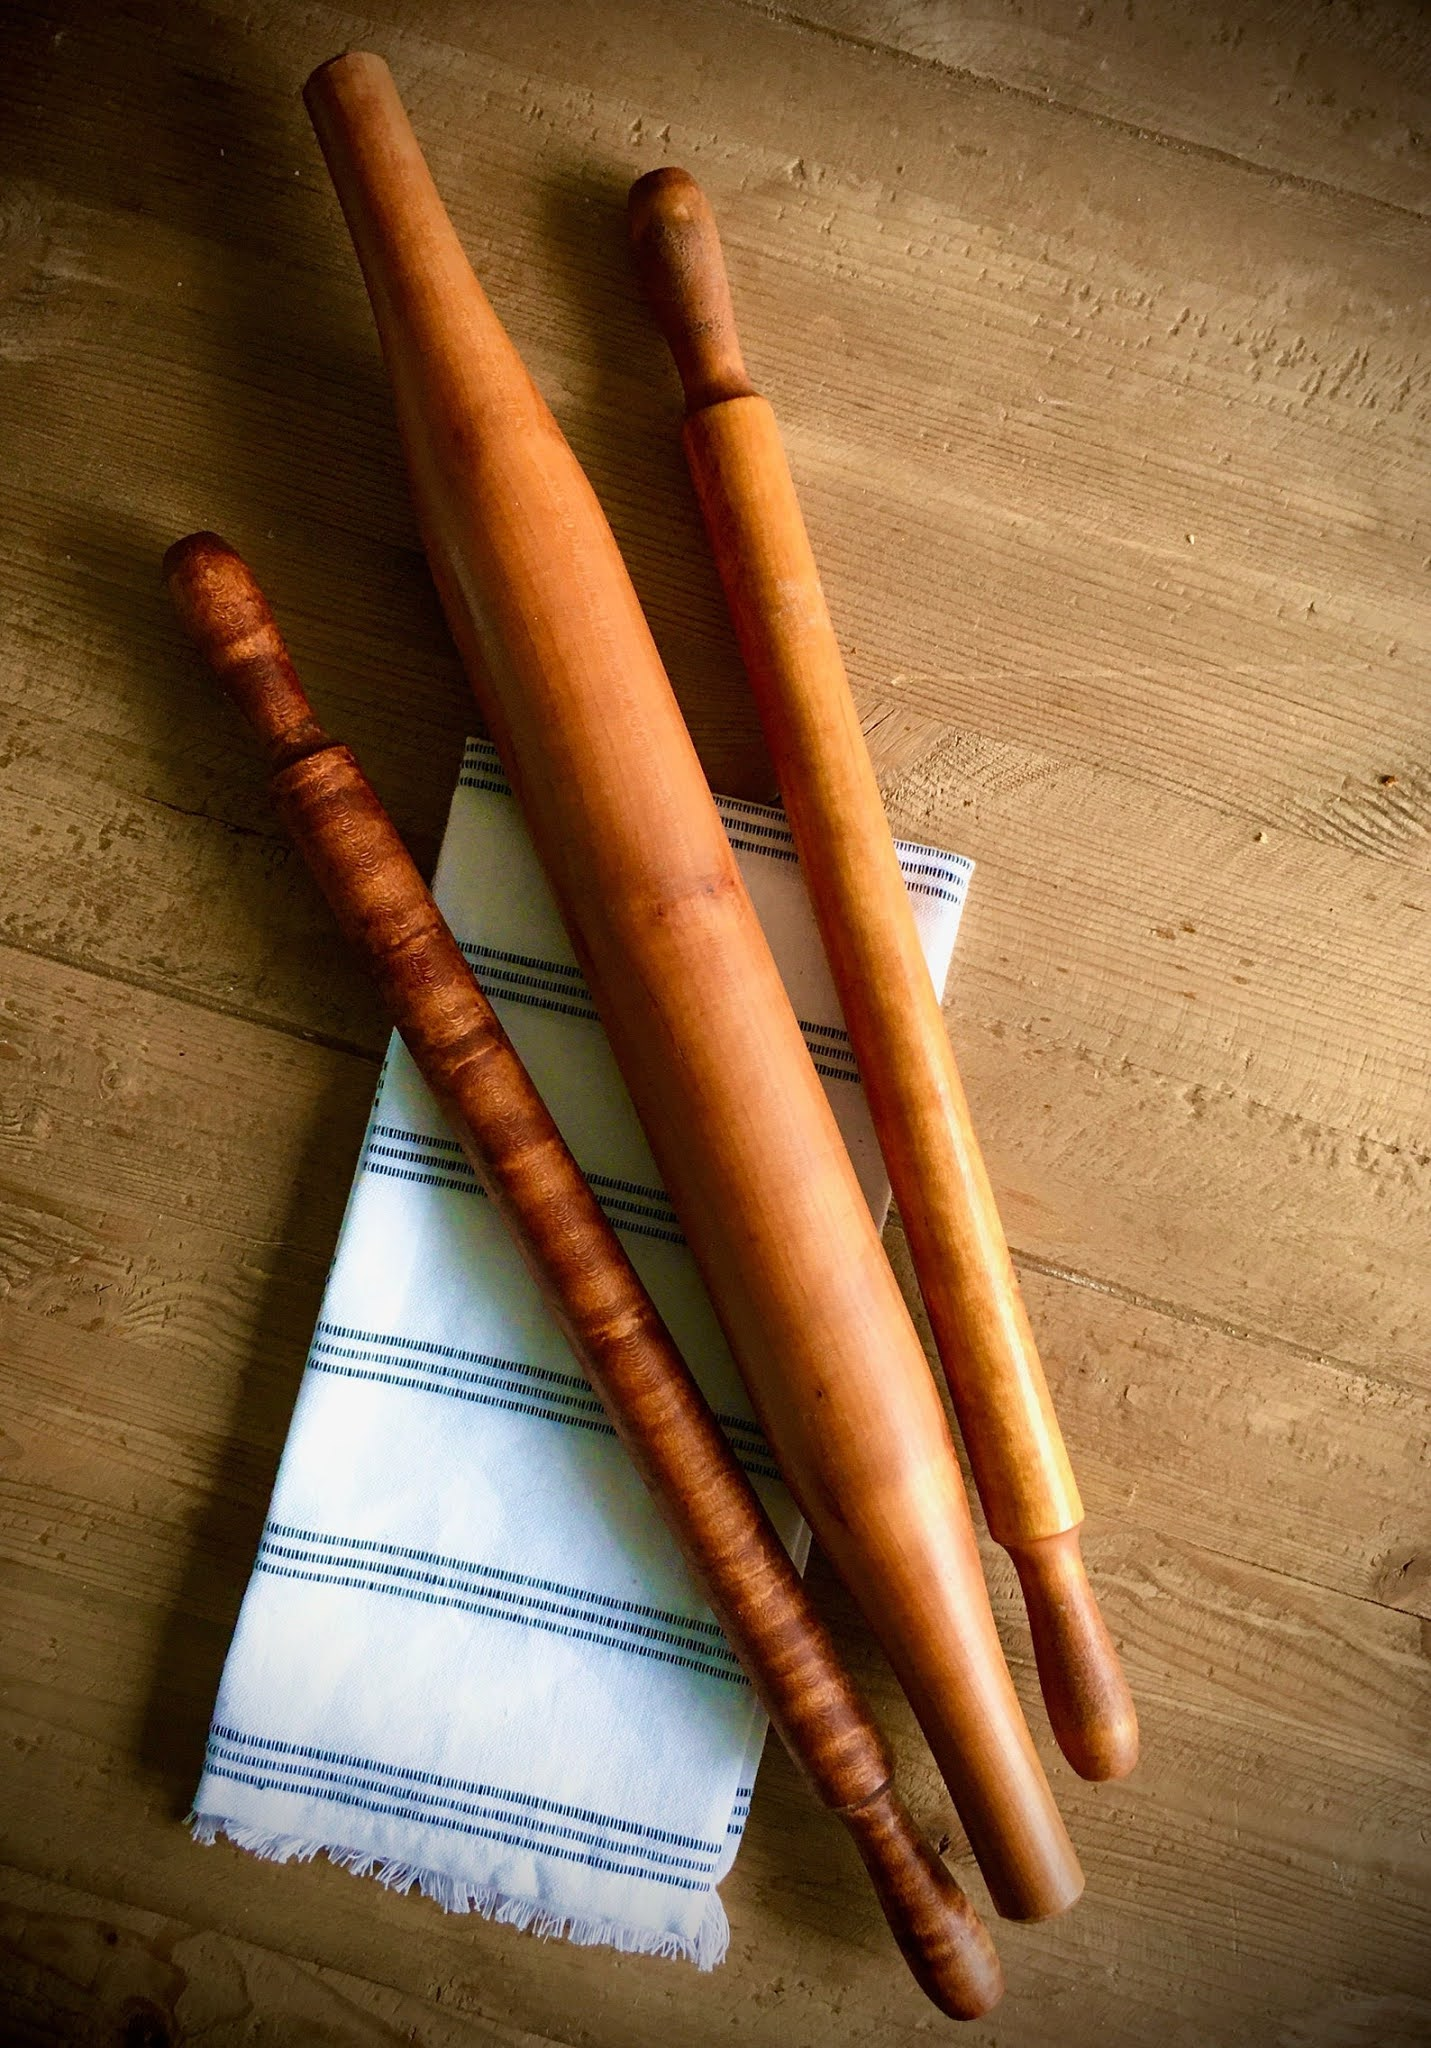 French-style rolling pins